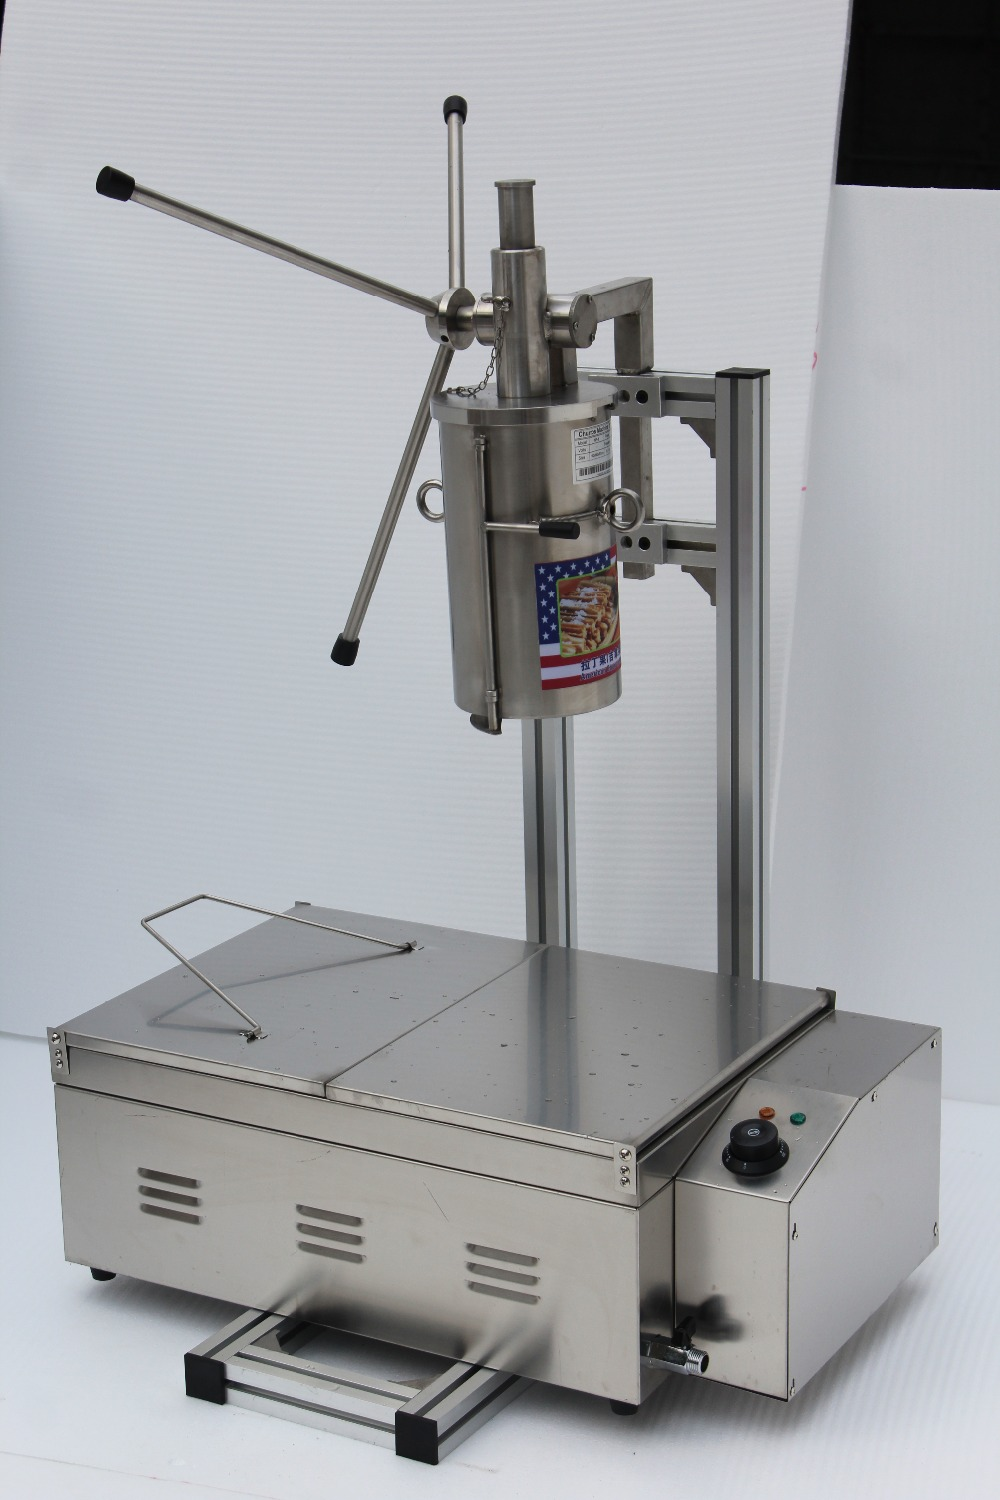 CE certificate stainless steel 5L churros making machine with cutter +25L electric fryer commercial stainless steel churro machine 25l electric fryer manual spanish churros maker 4 nozzles